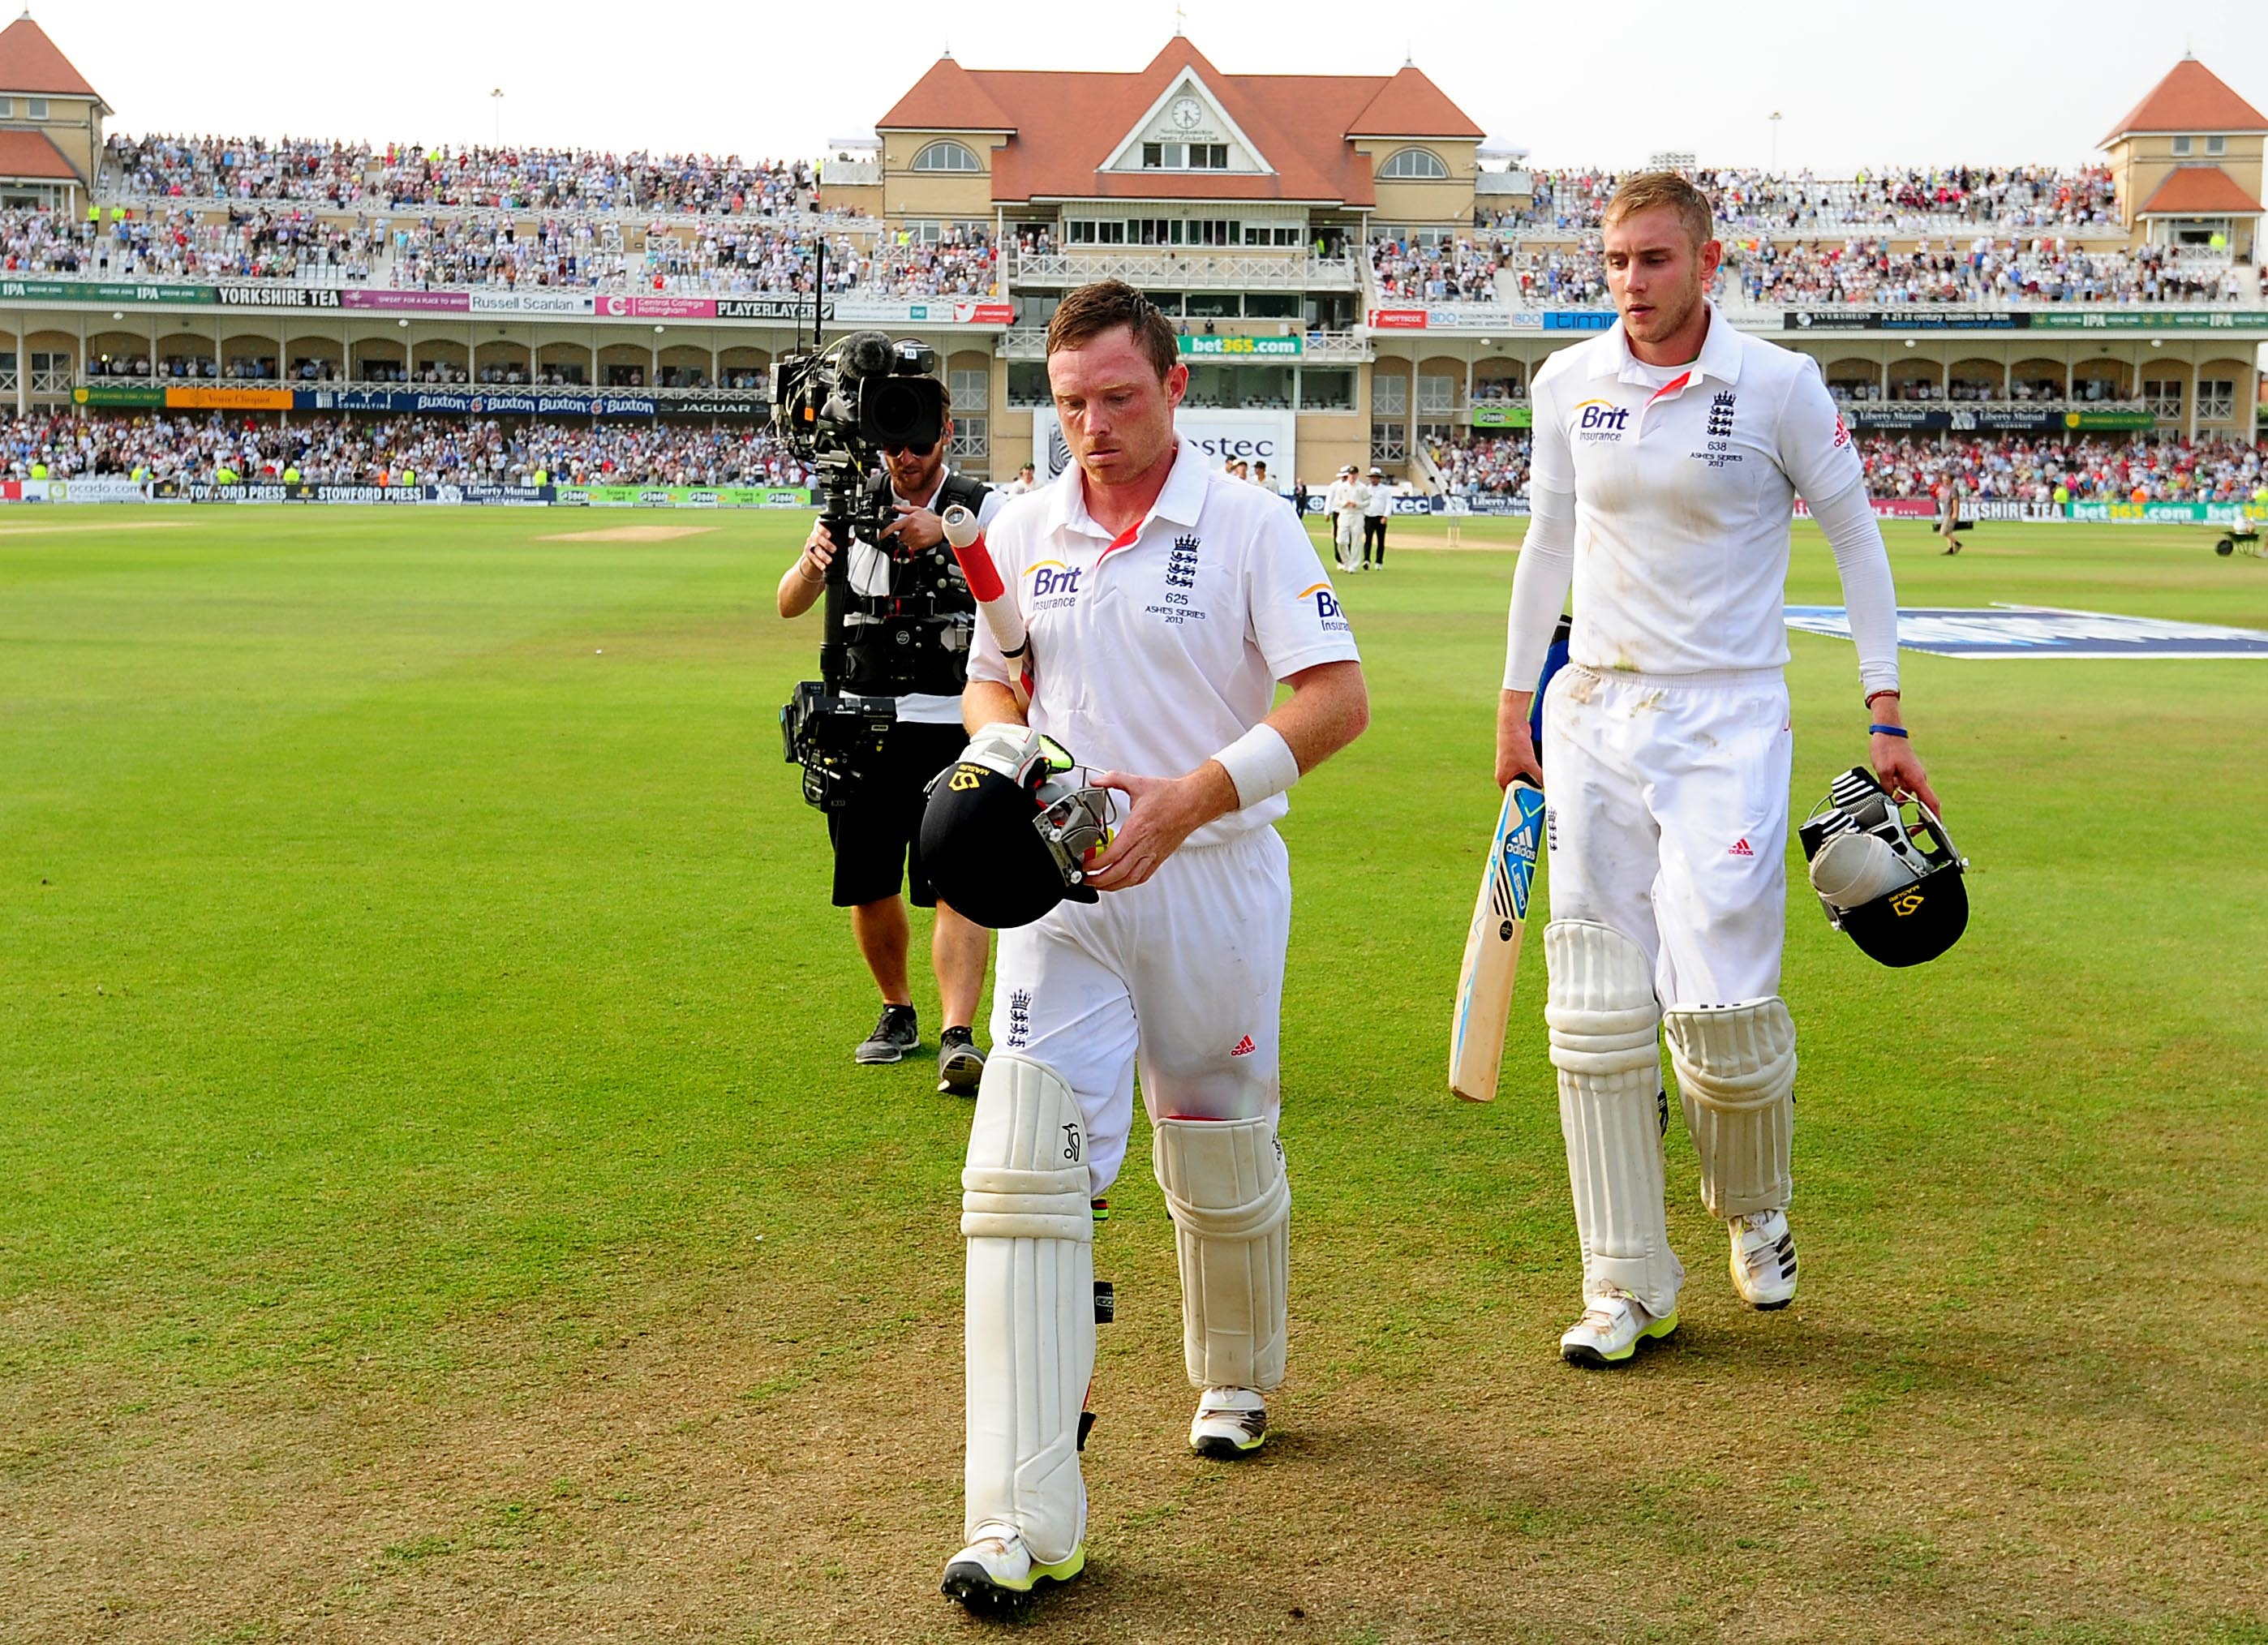 Ian Bell and Stuart Broad's partnership helped England take a decisive lead (Picture: PA)